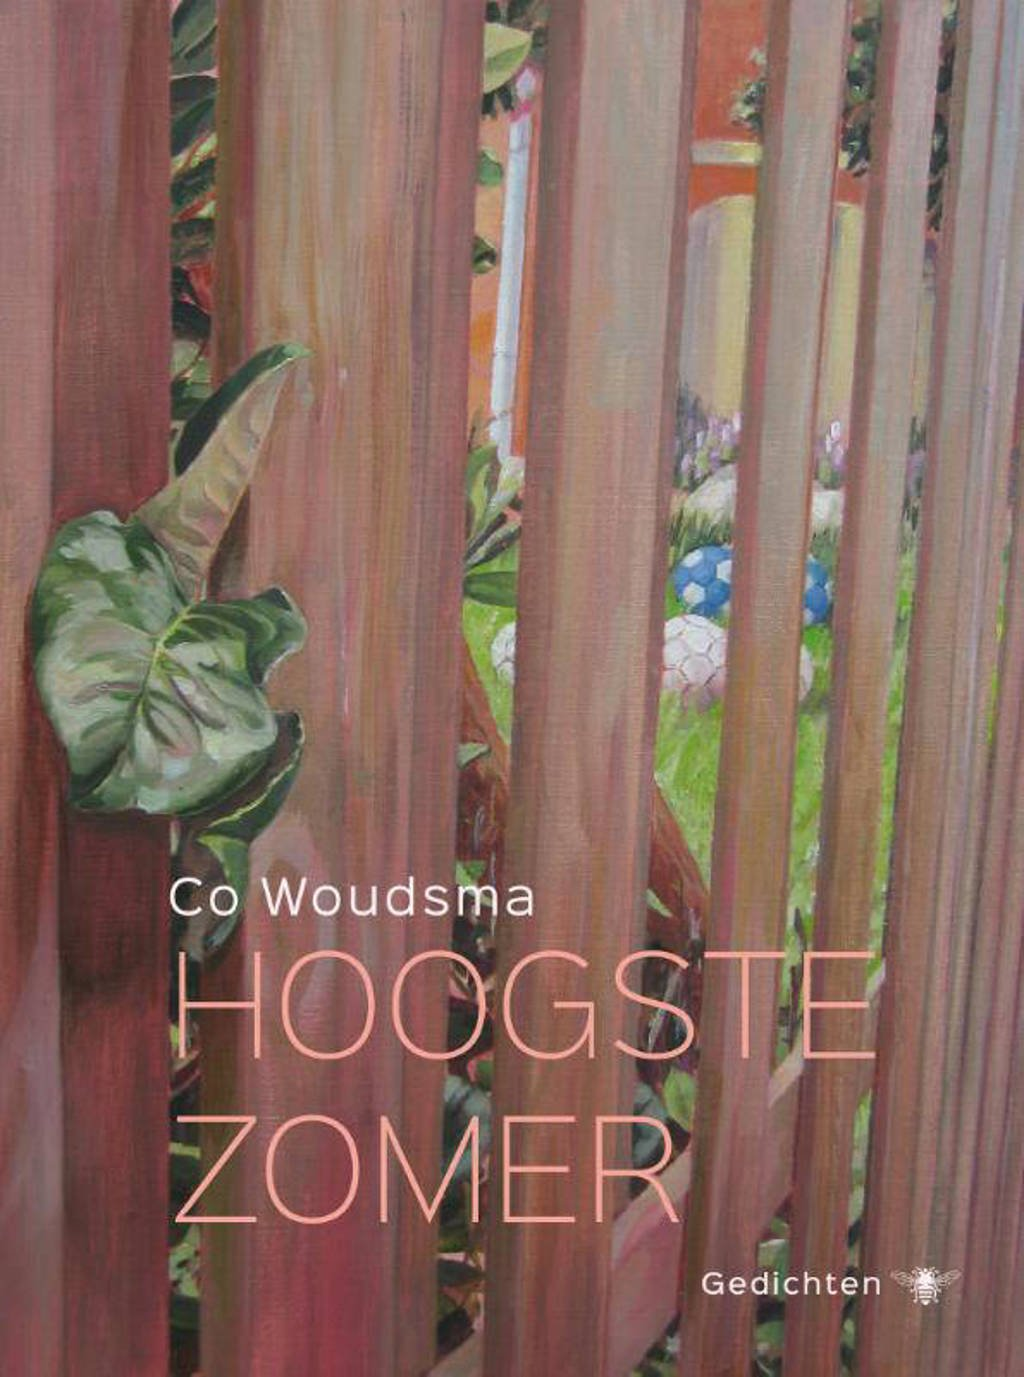 Hoogste zomer - Co Woudsma